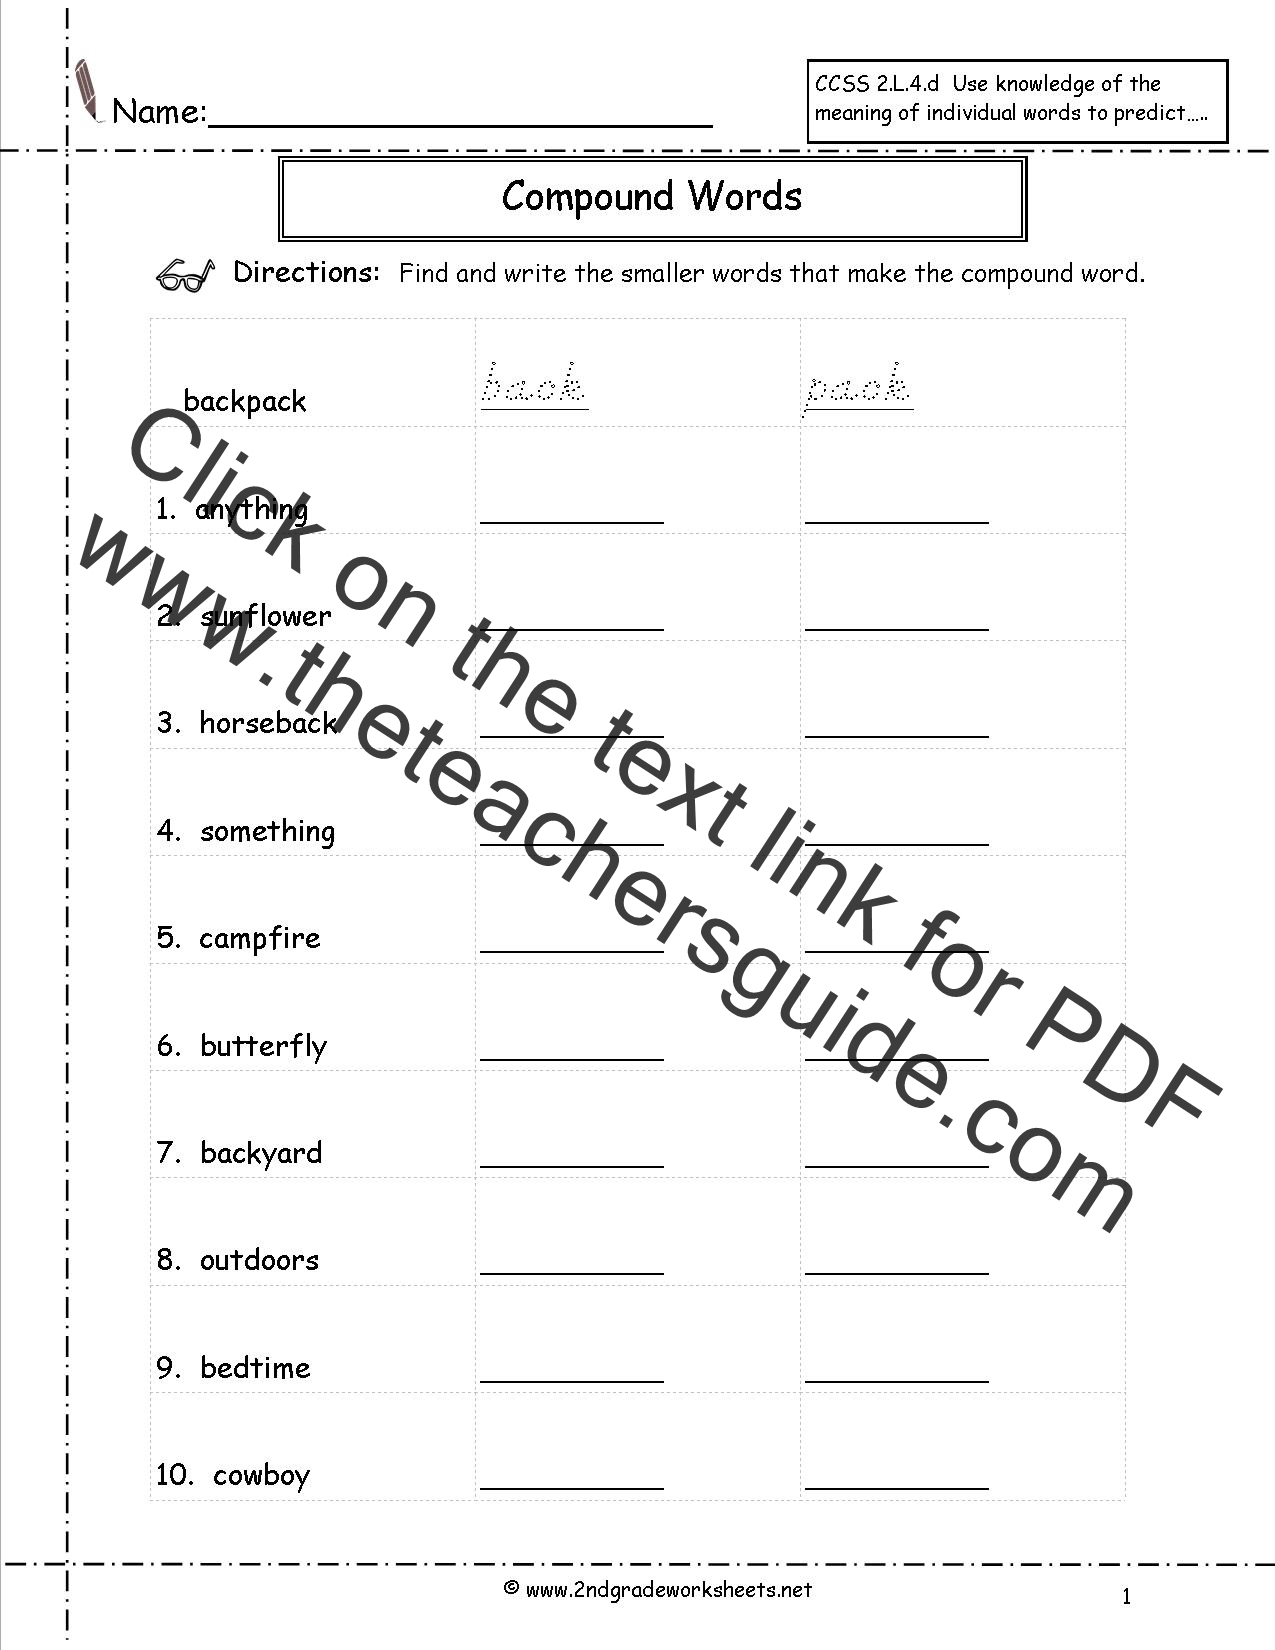 Worksheets English 2 Worksheets free languagegrammar worksheets and printouts compound words worksheets